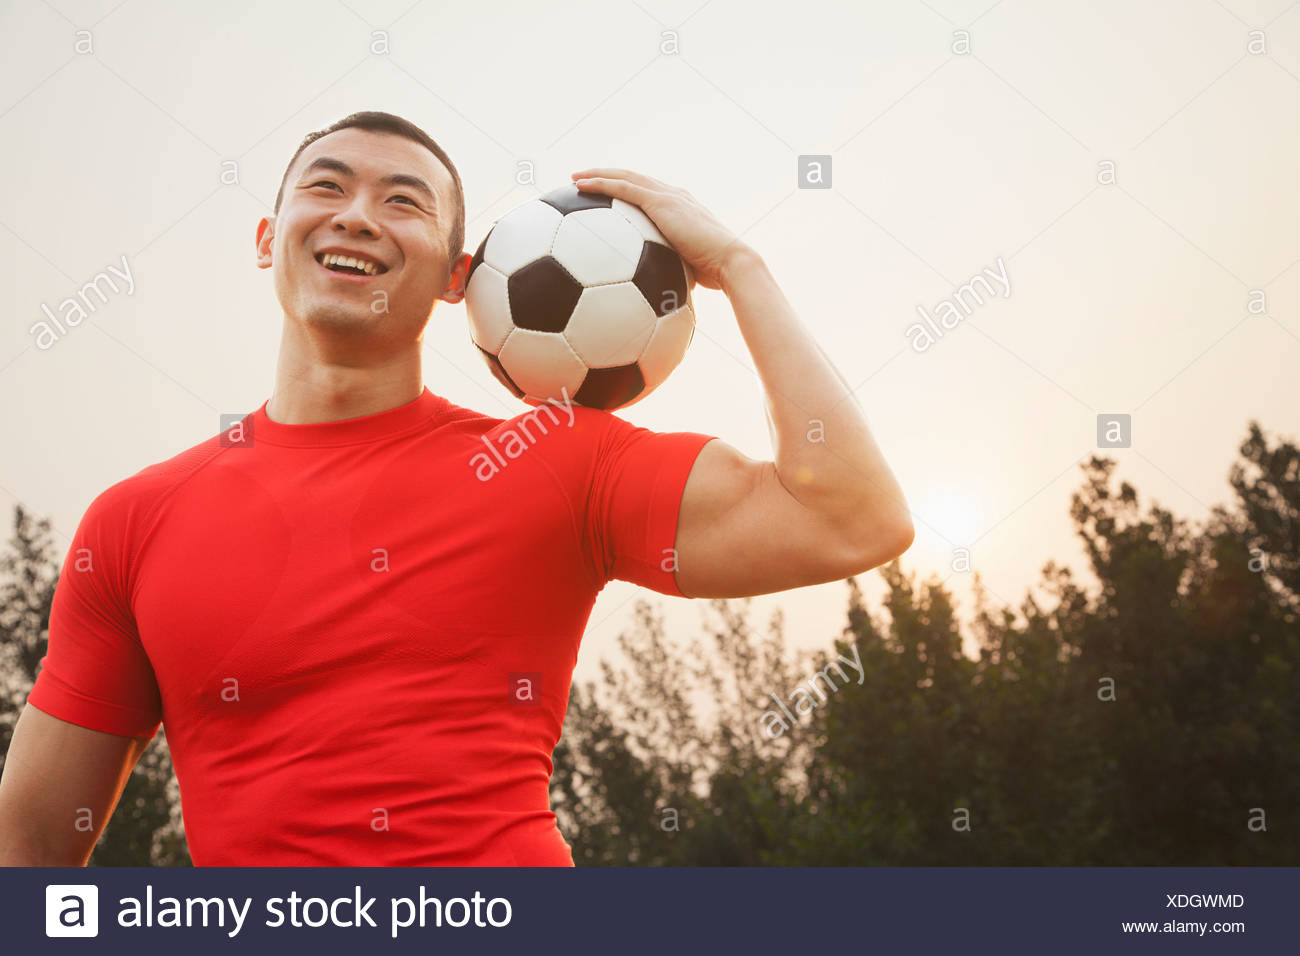 Athletic Man with Soccer Ball - Stock Image